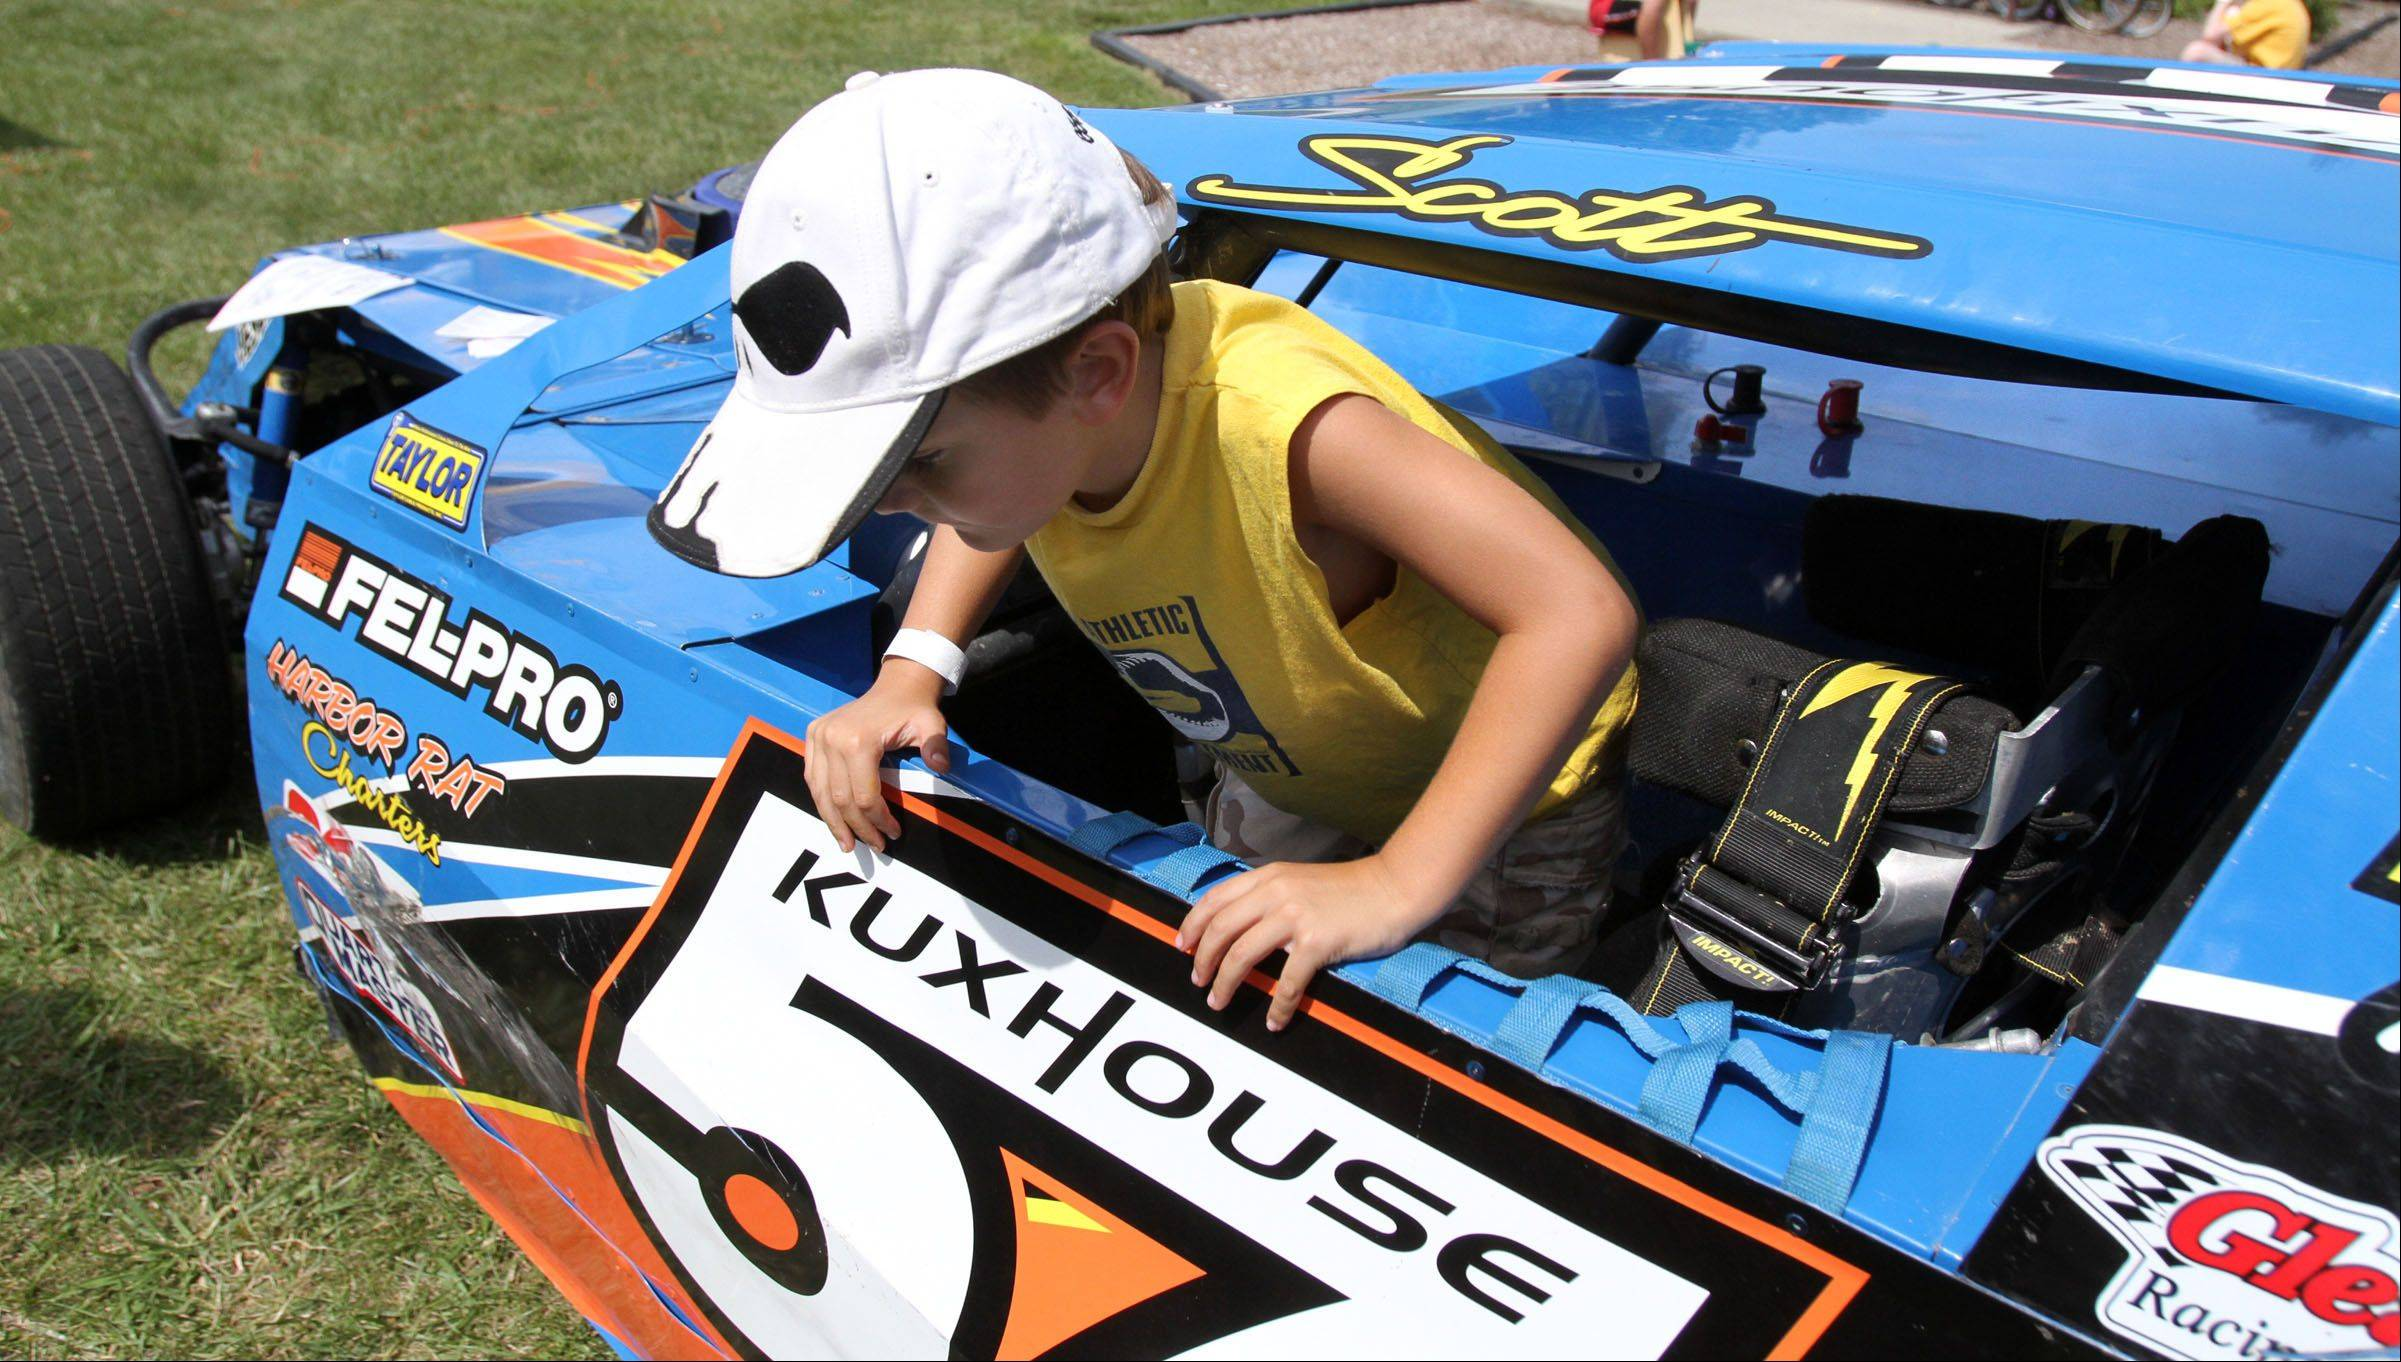 Troy Hensley, 5, of Lake Villa climbs out of a dirt modified stock car owned by Scott Kuxouse of Antioch and on display at Hainesville Fest at Union Square Park on Saturday.